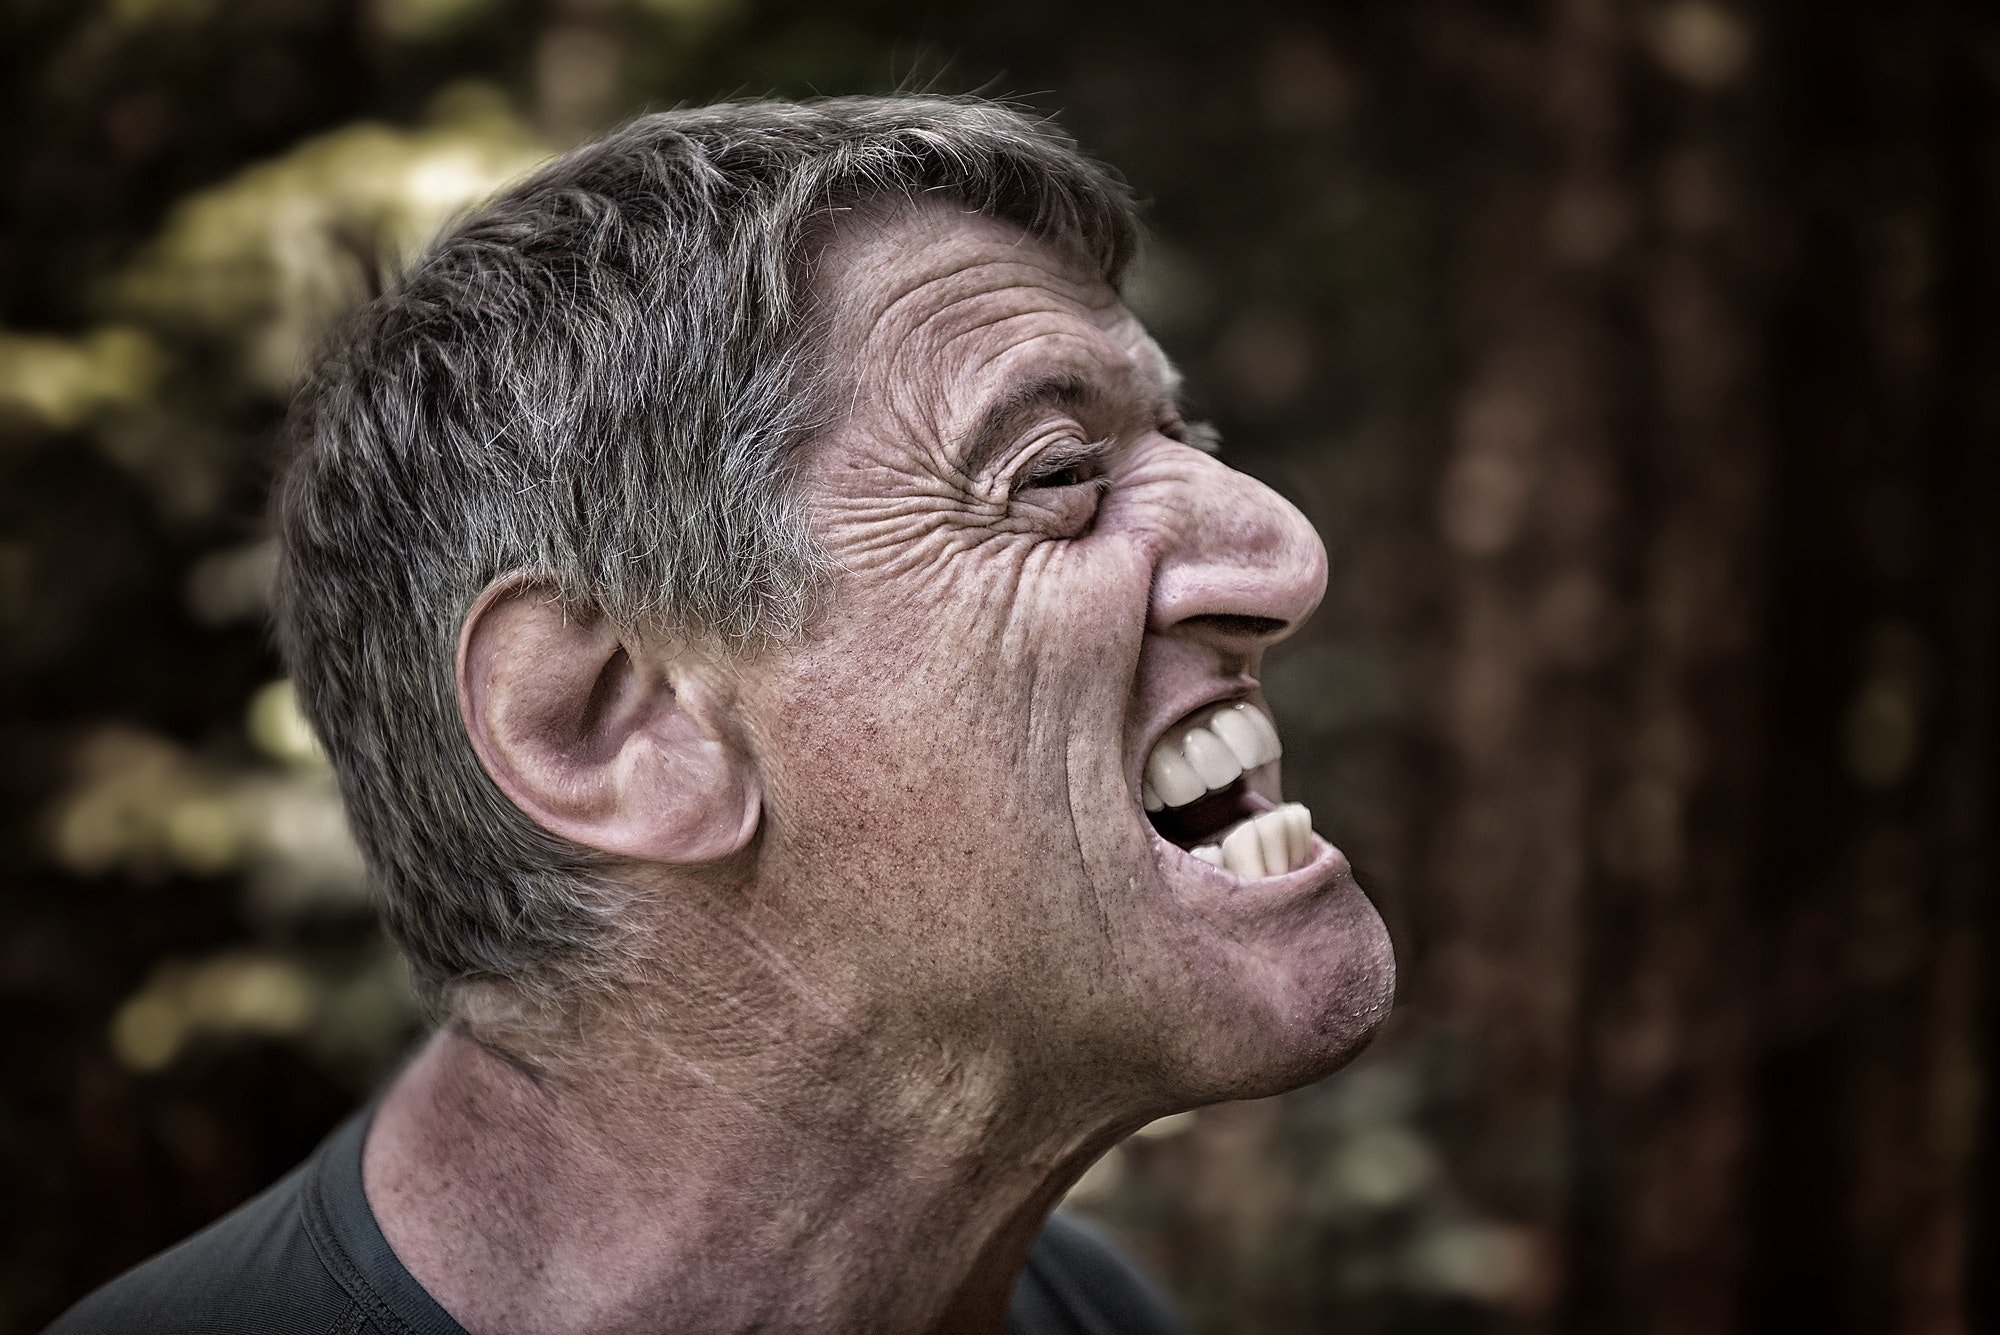 An angry man | Source: Pexels.com